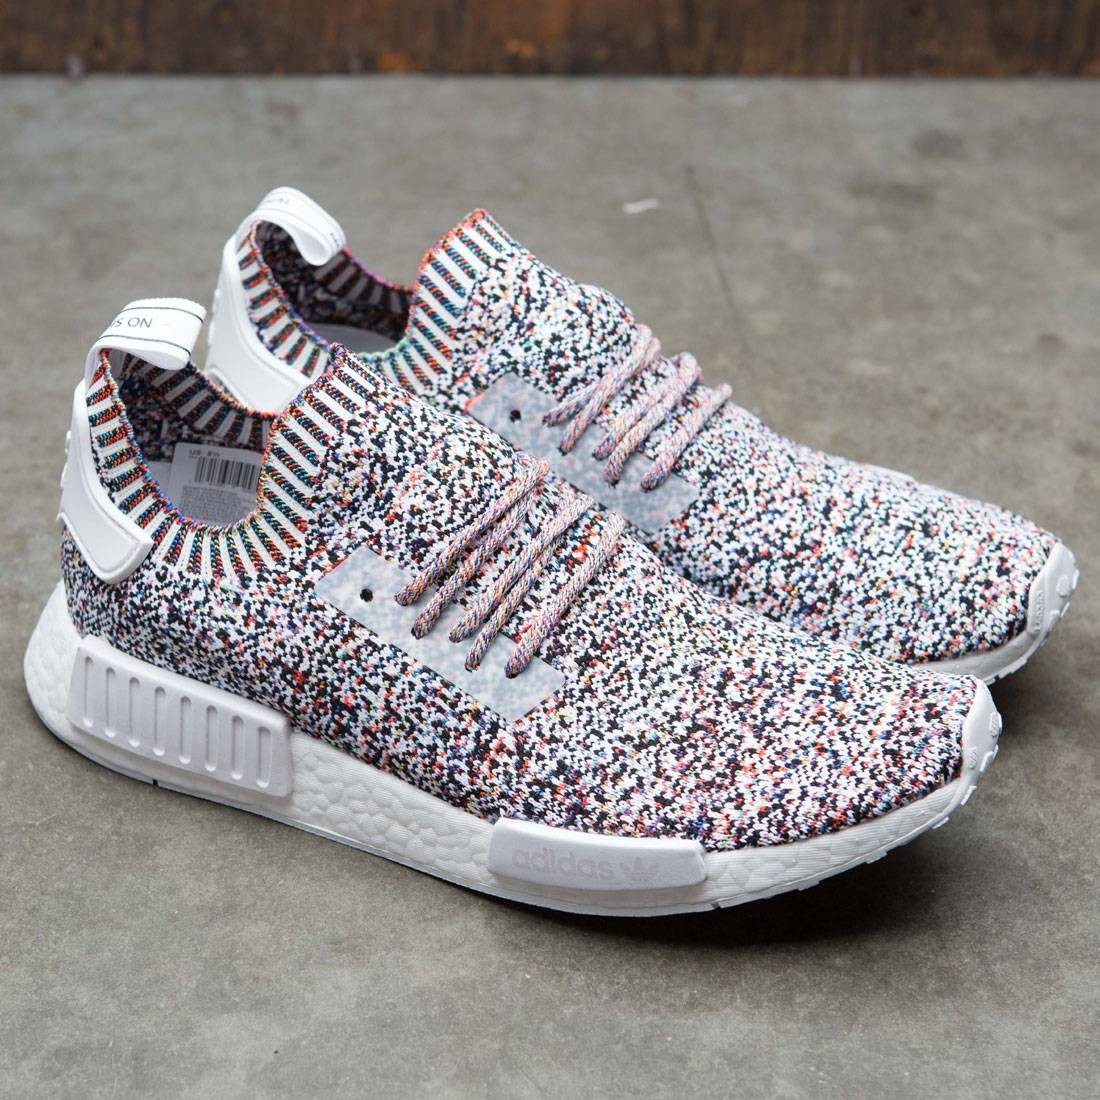 615b15f96 Adidas NMD R1 Prime Knit  Tri Color  black   white   red   blue (10.5)